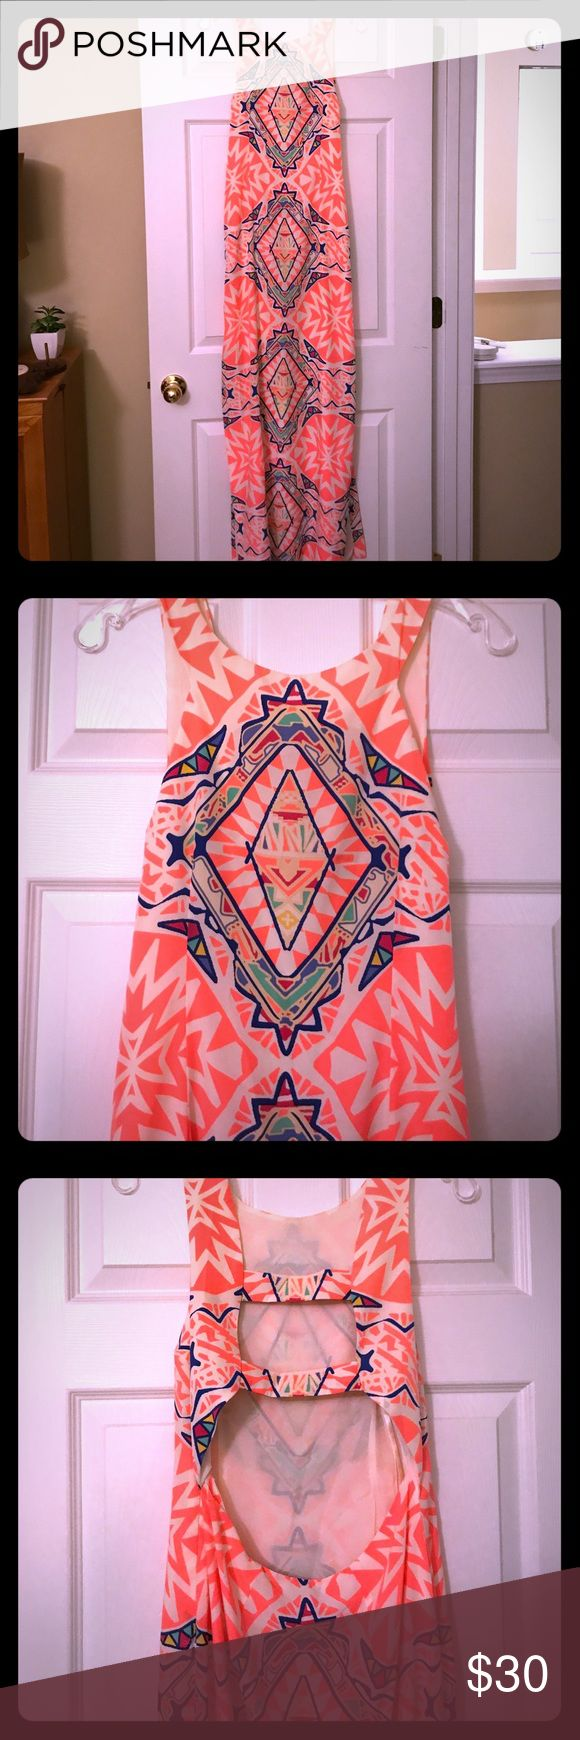 Gianni Bini Aztec Print Maxi Dress M -SEXY BACK I looooove this maxi! I bought this in New Orleans while traveling for work and wore it on the plane home to Nashville. I got TONS of compliments at the airport! Lucky for you 🍀 I have wayyy too much resort-wear and I am listing this basically new beauty at a killer price. Check out the open back of the dress!!!! Gianni Bini Dresses Maxi